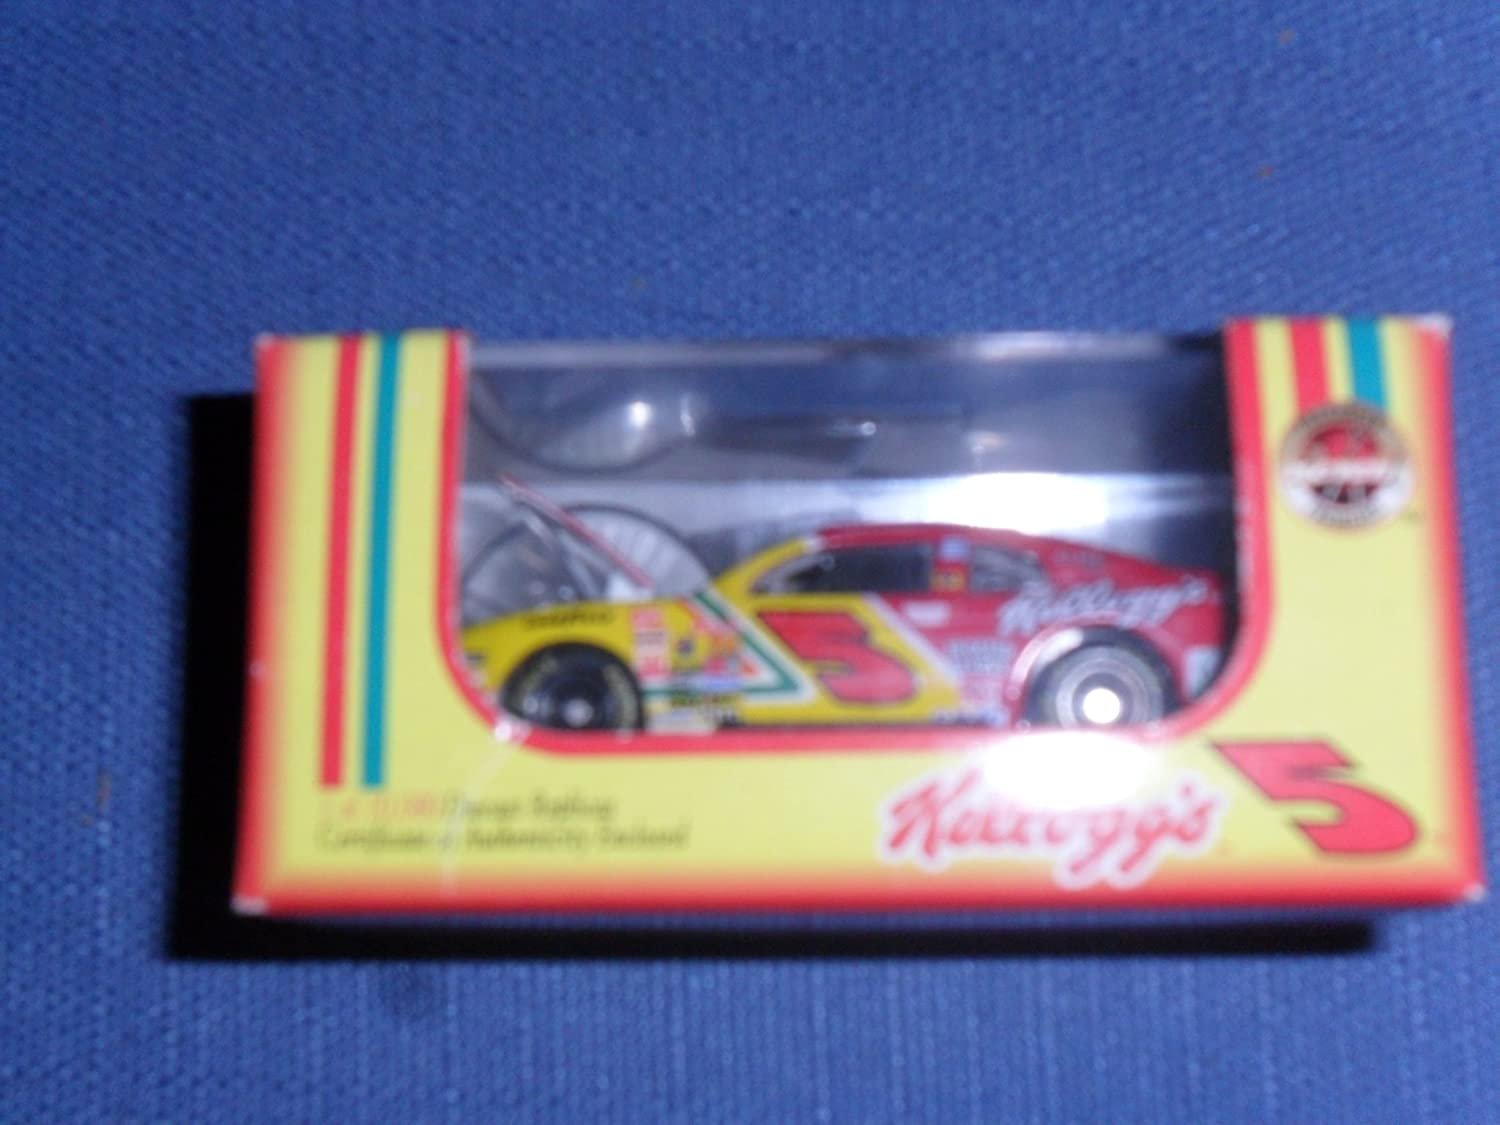 Terry Labonte #5 Kelloggs Corn Flakes Chevy Monte Carlo 1//64 Diecast 1998 NASCAR Revell Collection Limited Edition 1 of 10,080 Hood Opens Certificate of Authenticity Enclosed